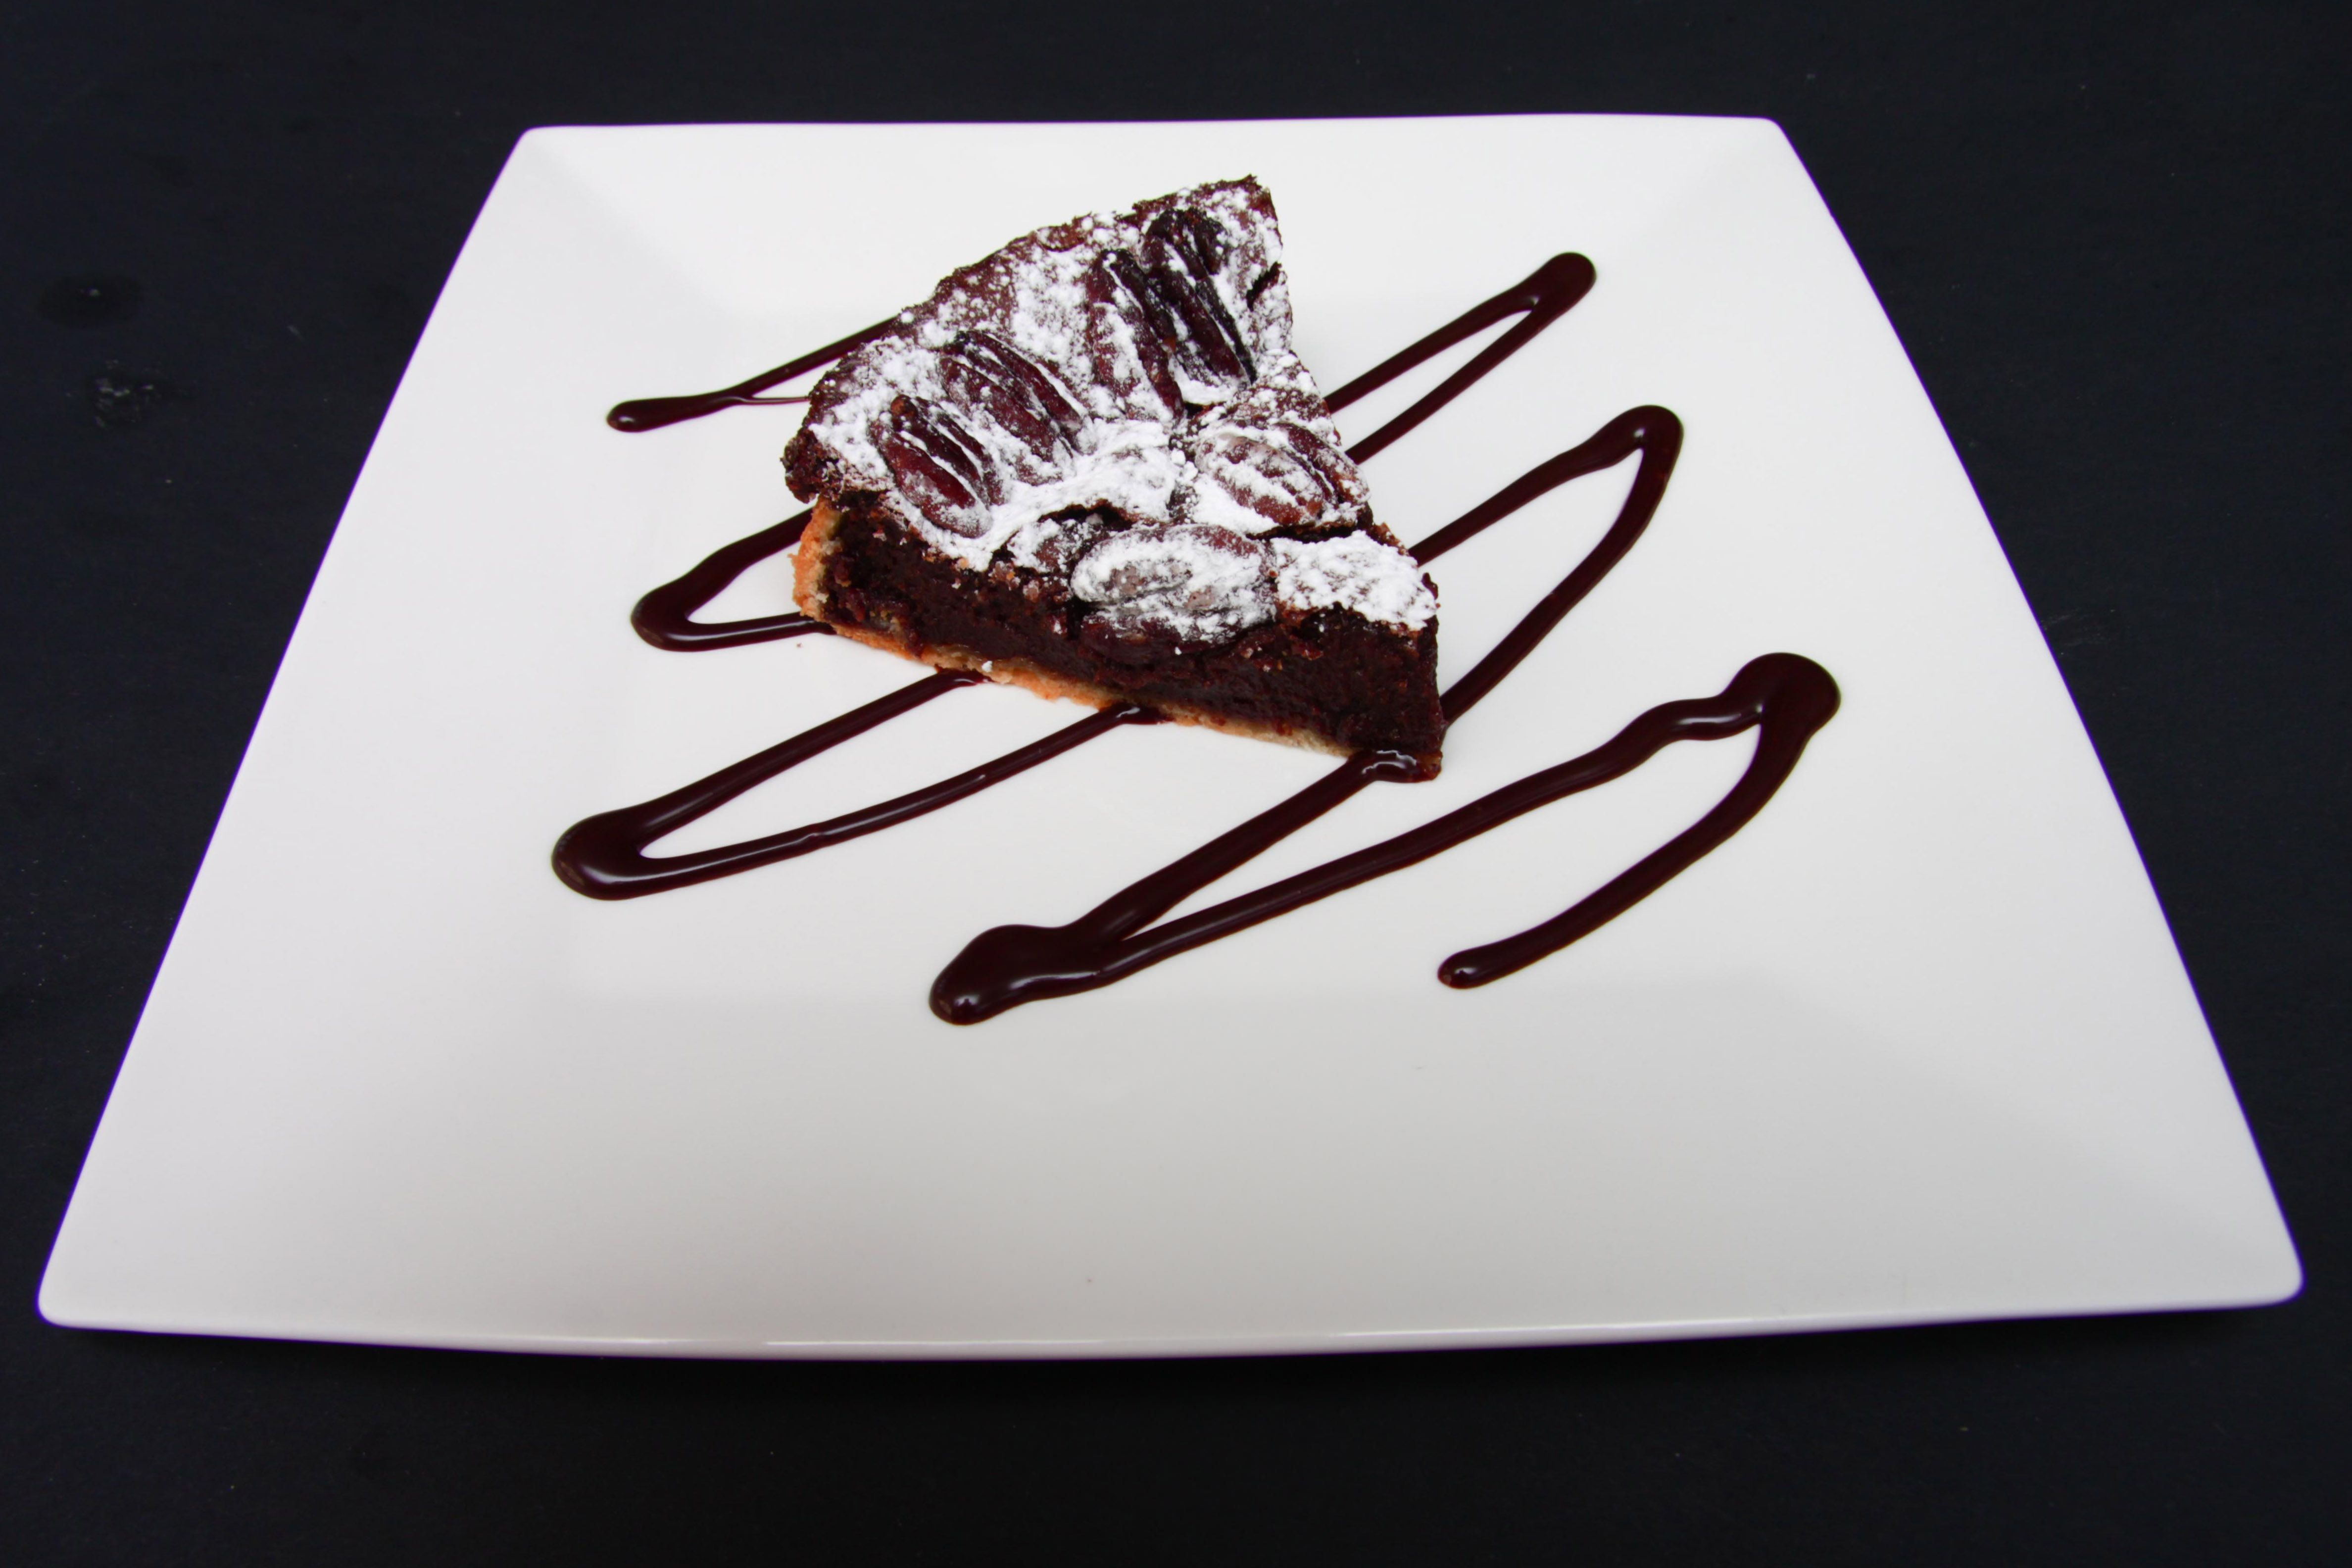 Chocolate and Pecan Nut Tart Recipe – Mmmm just another slice please.